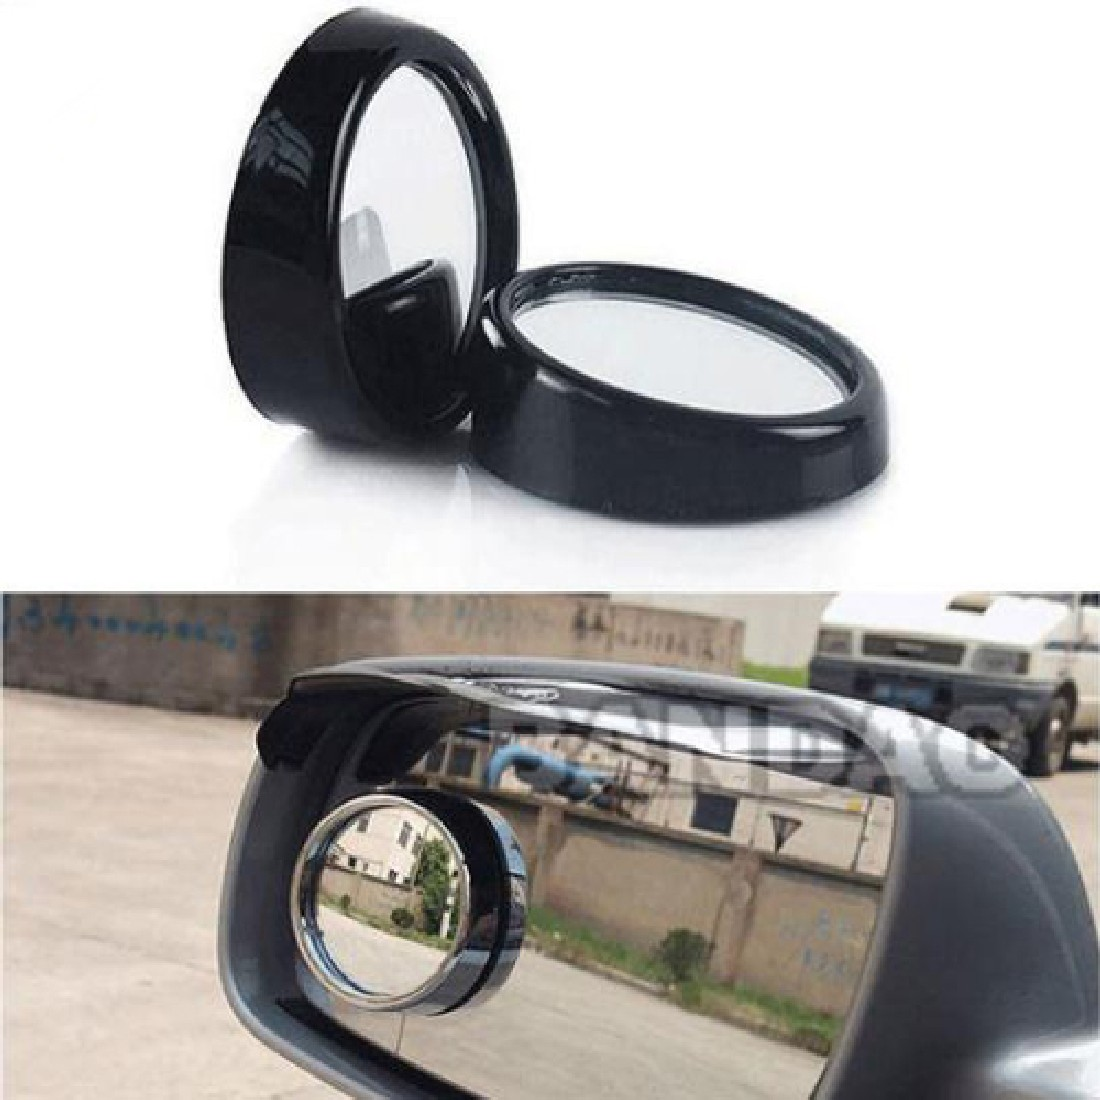 Adjustable 360 degree mirror rotation Angle Round Convex Blind Spot Mirror Rear View Messaging Car Vehicle the black